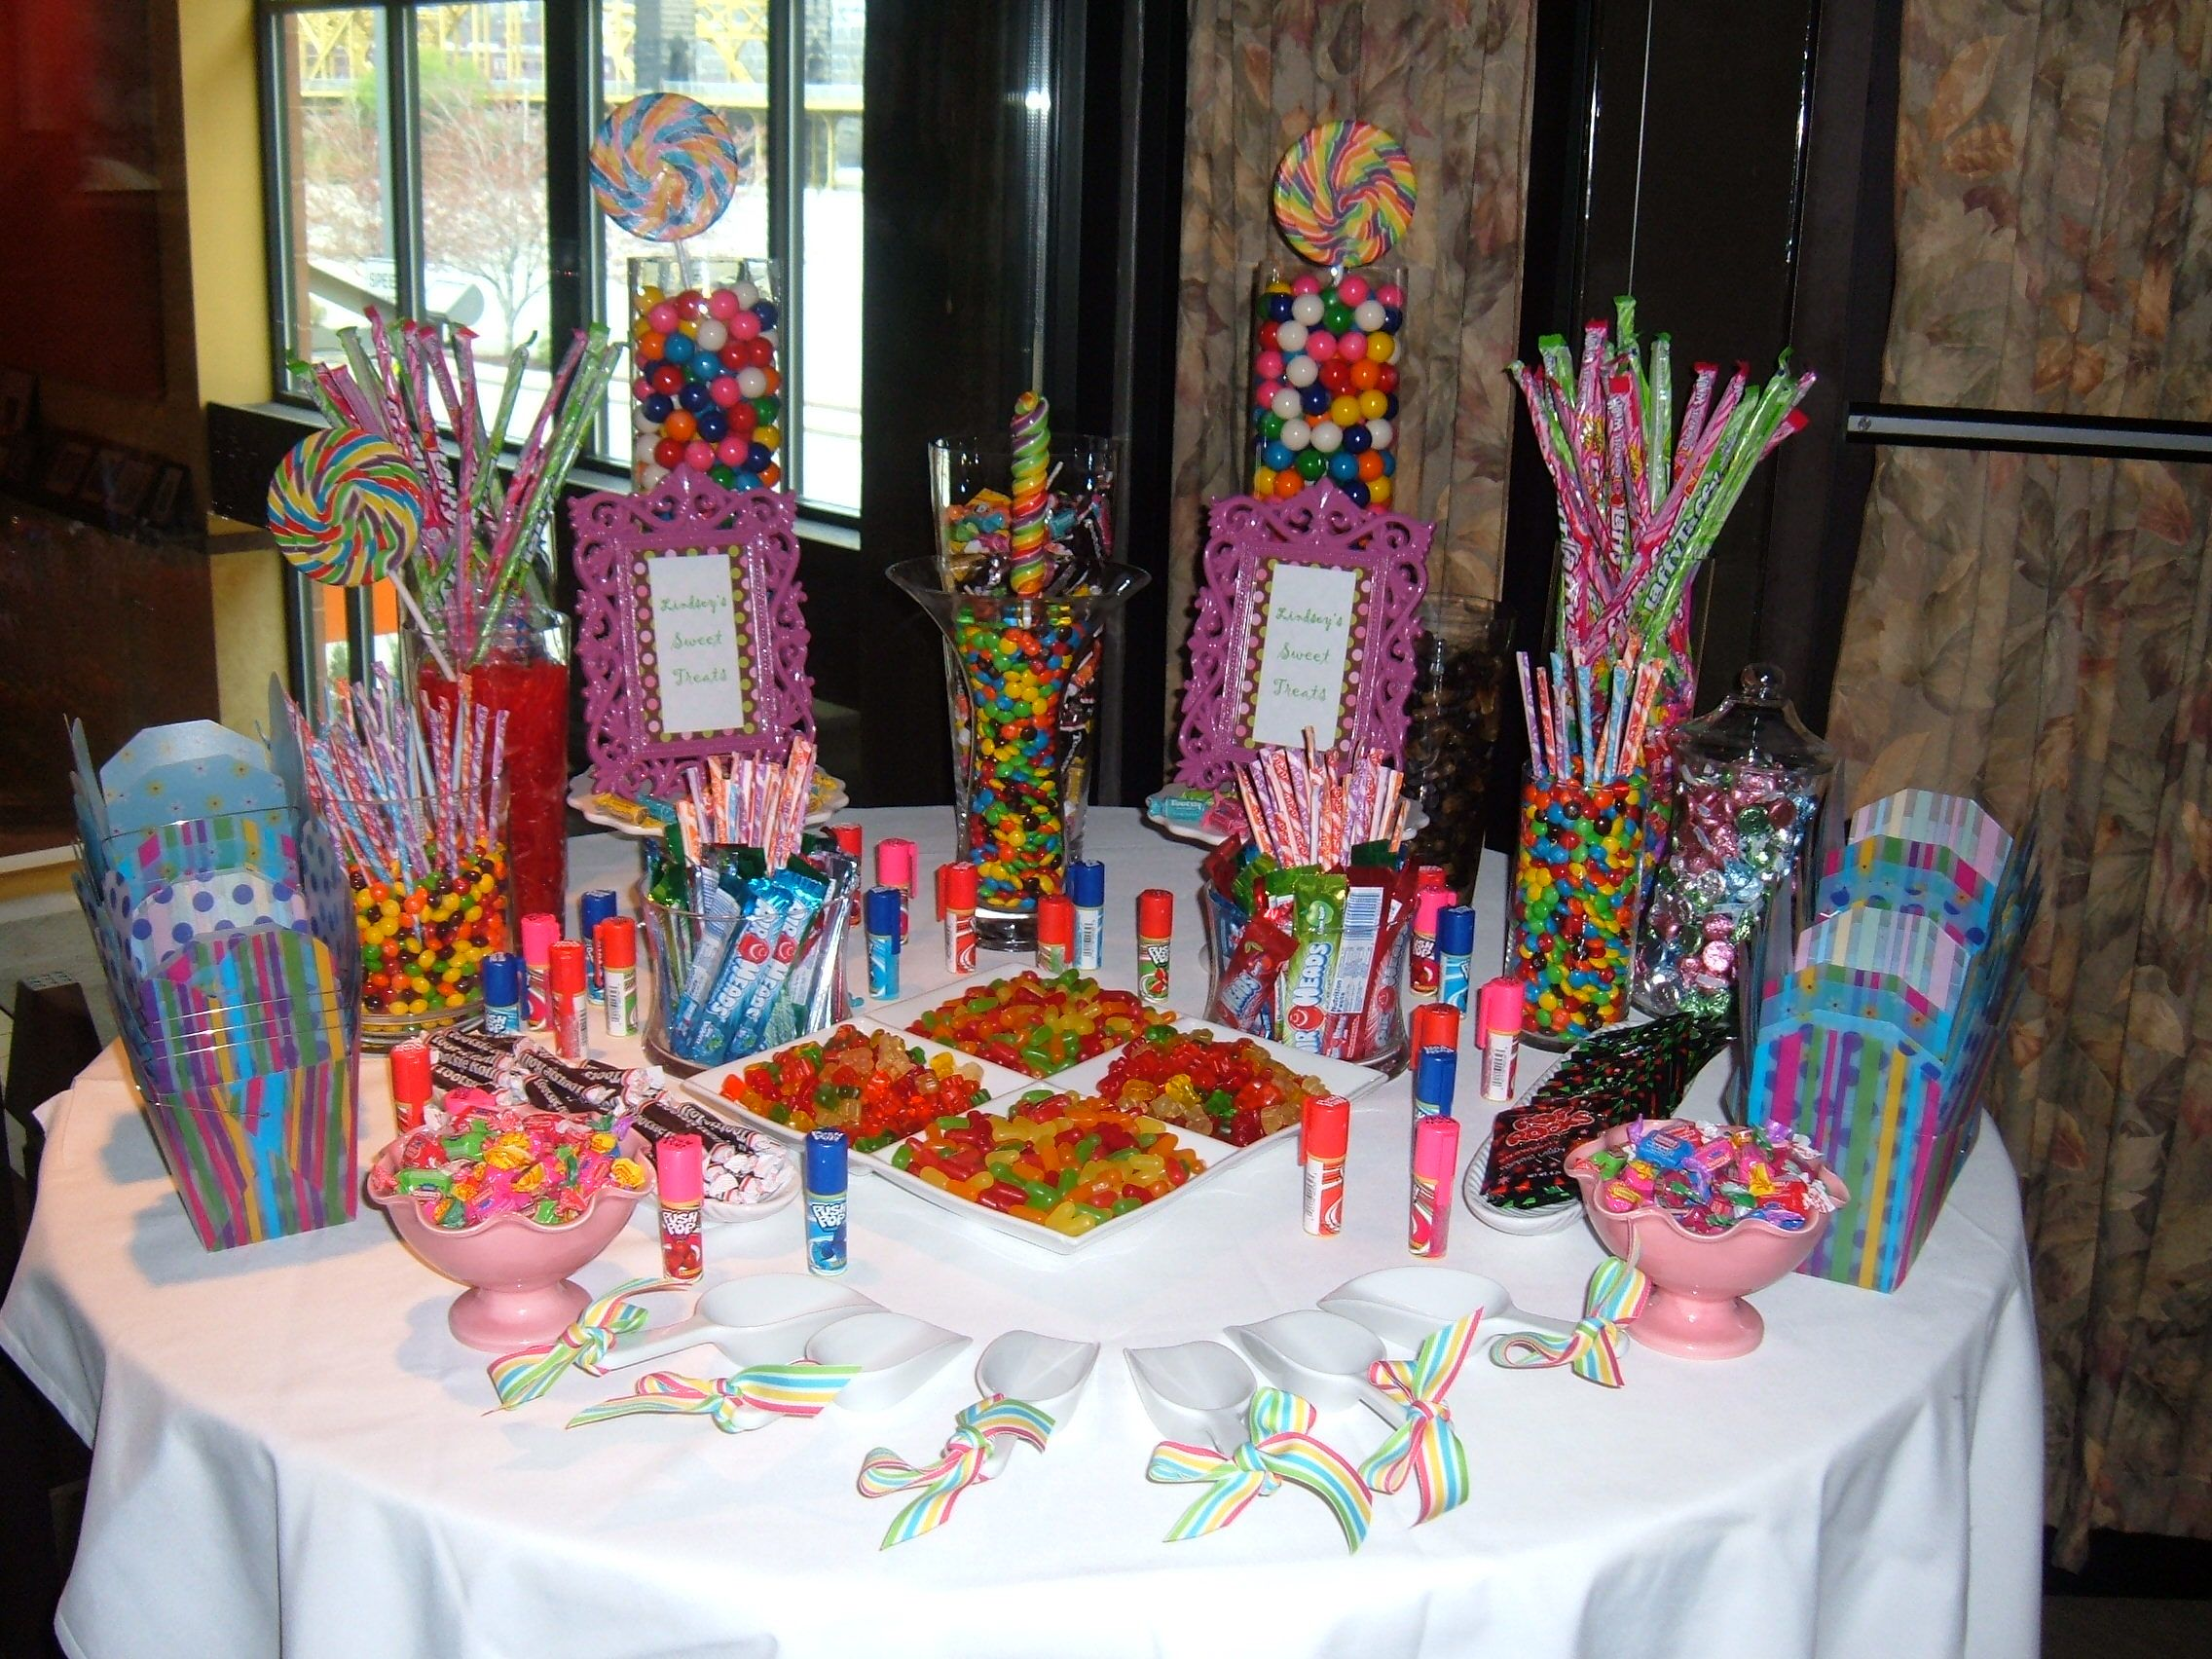 Pin By Shawna Kohn On Graduation Party Birthday Party Table Decorations Diy Candy Table Candy Table